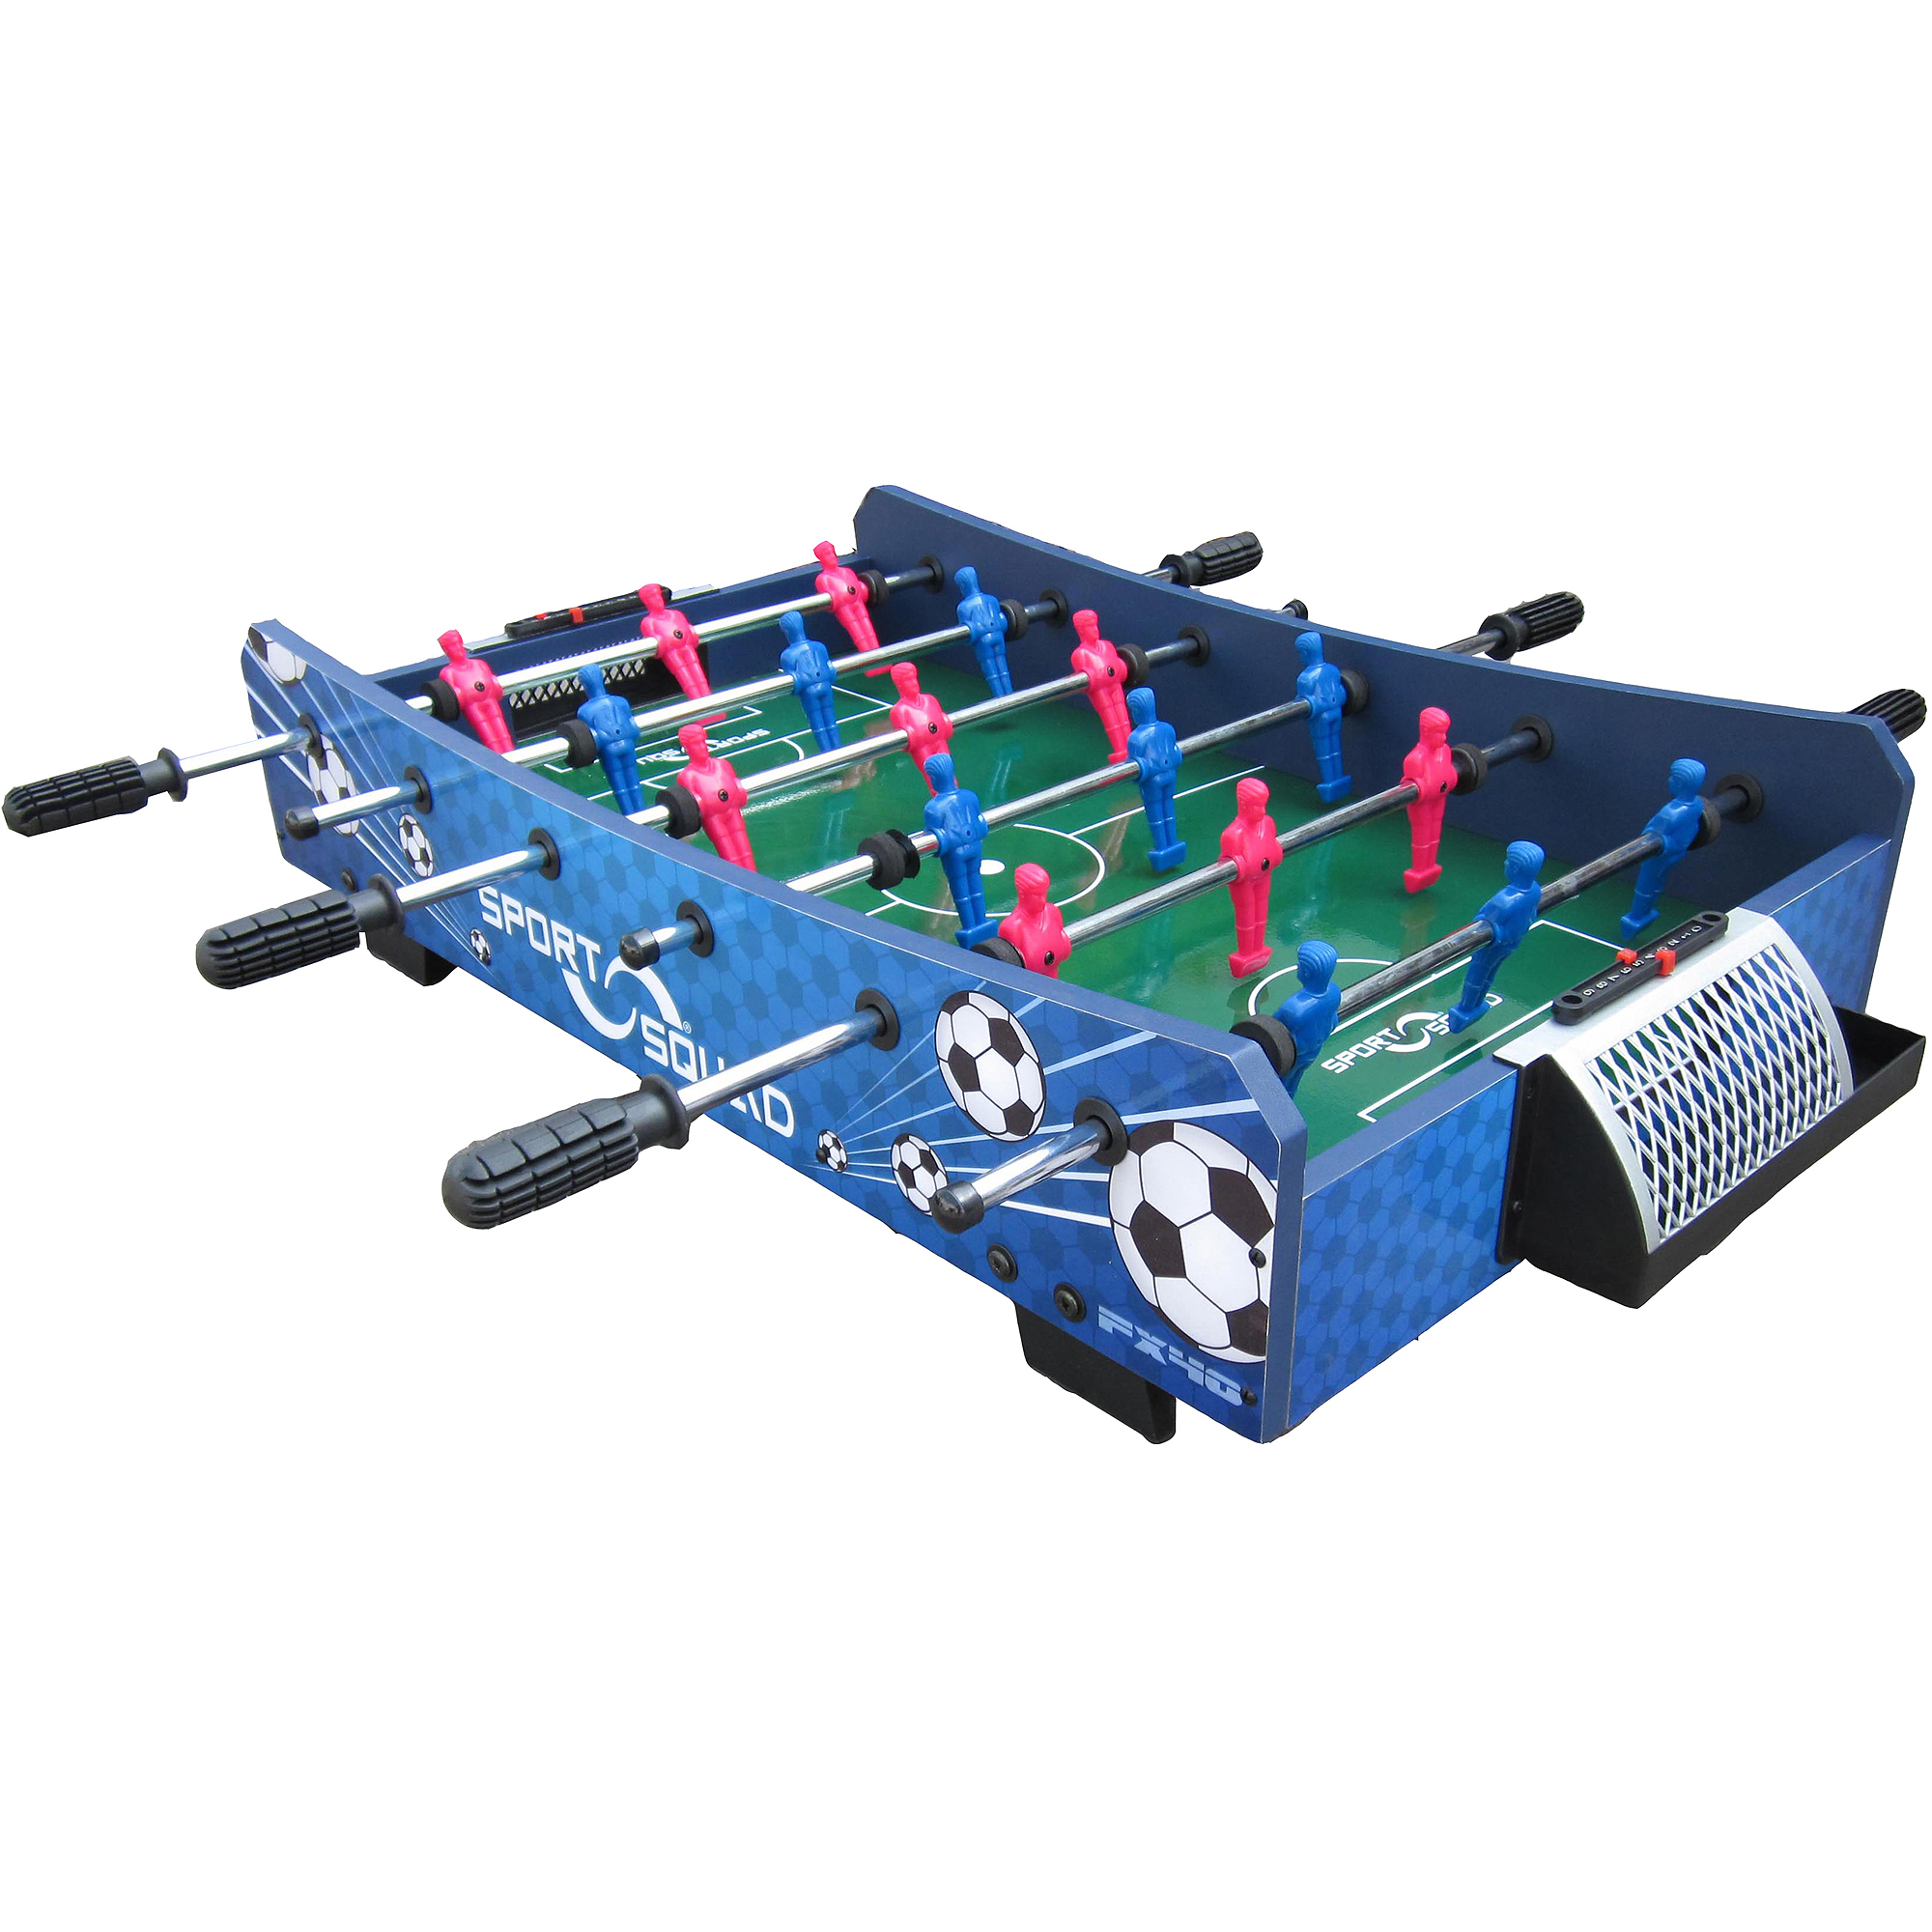 Sport Squad FX40 Compact Foosball Table Conversion Top, 40 Inch